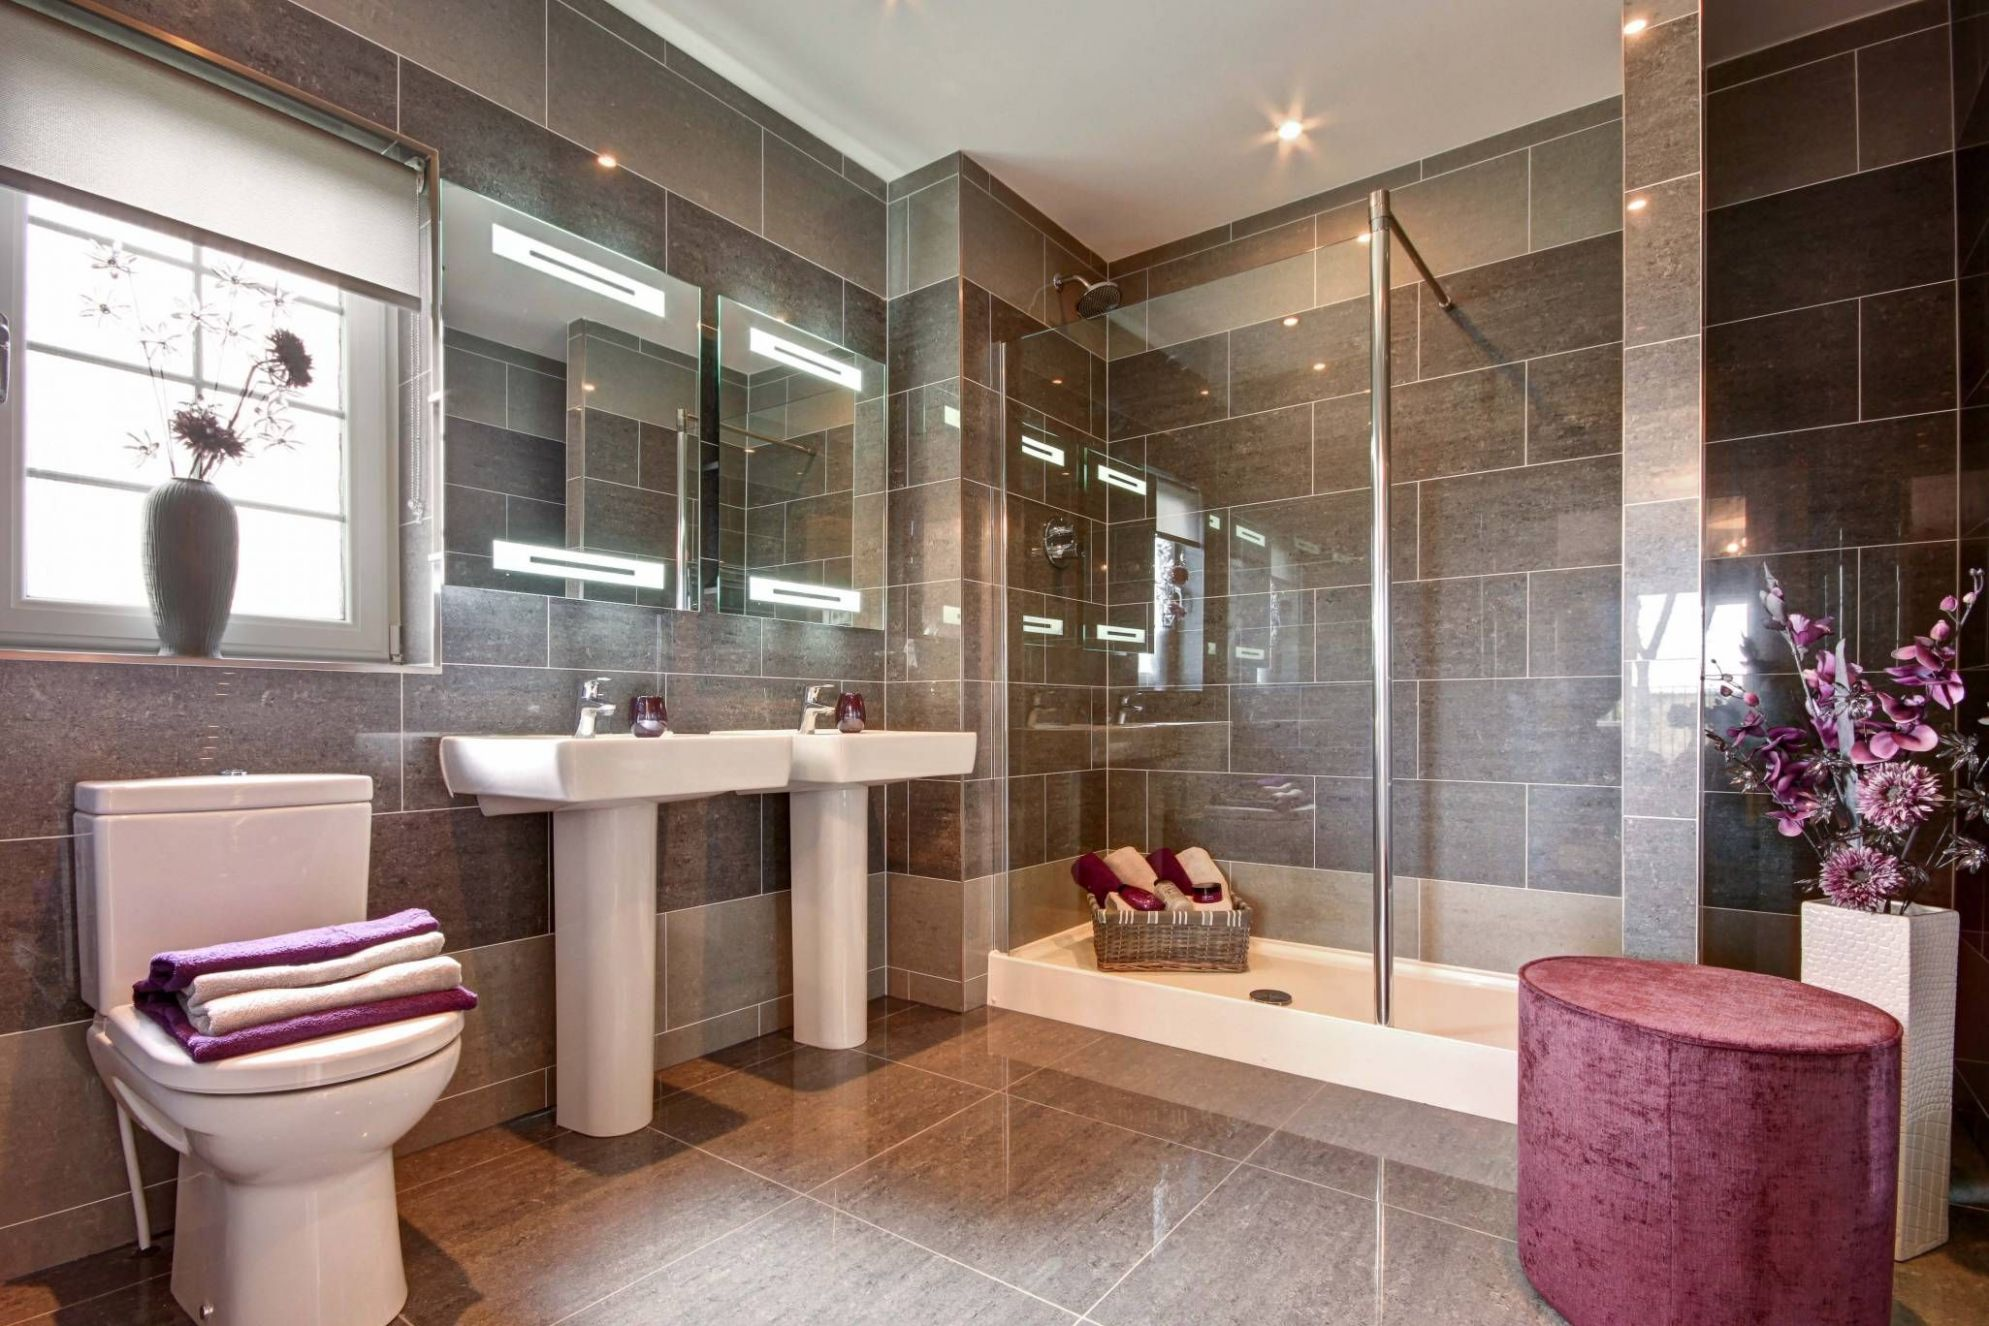 Edinburgh | Bathroom, Corner bathtub, Luxury living